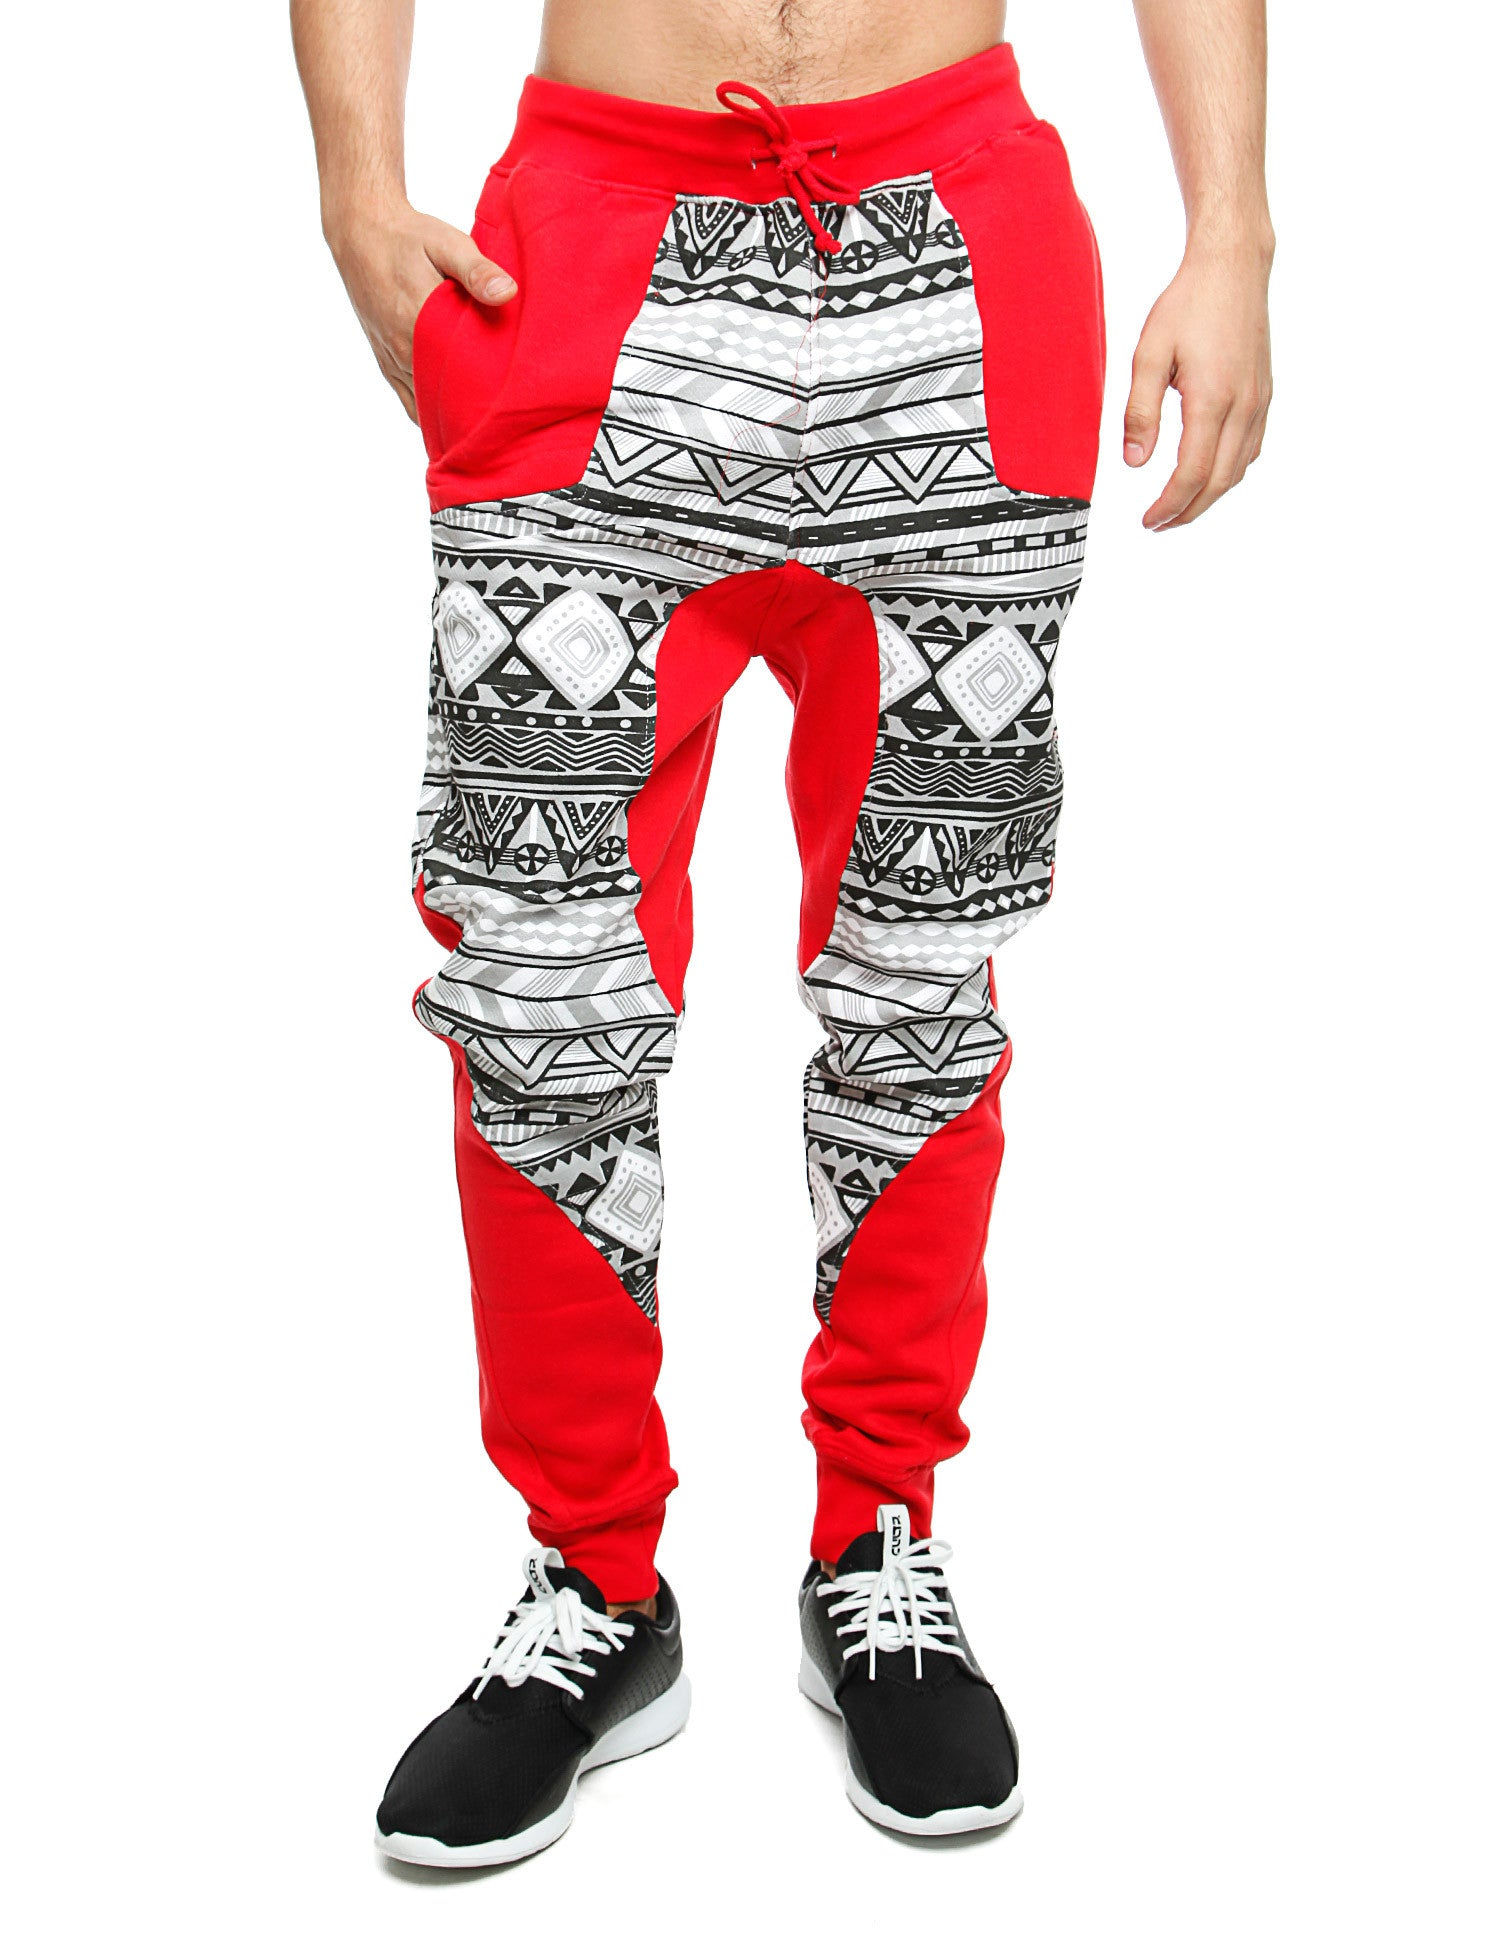 Imperious ?Aztec? Sweatpant FP29 Red